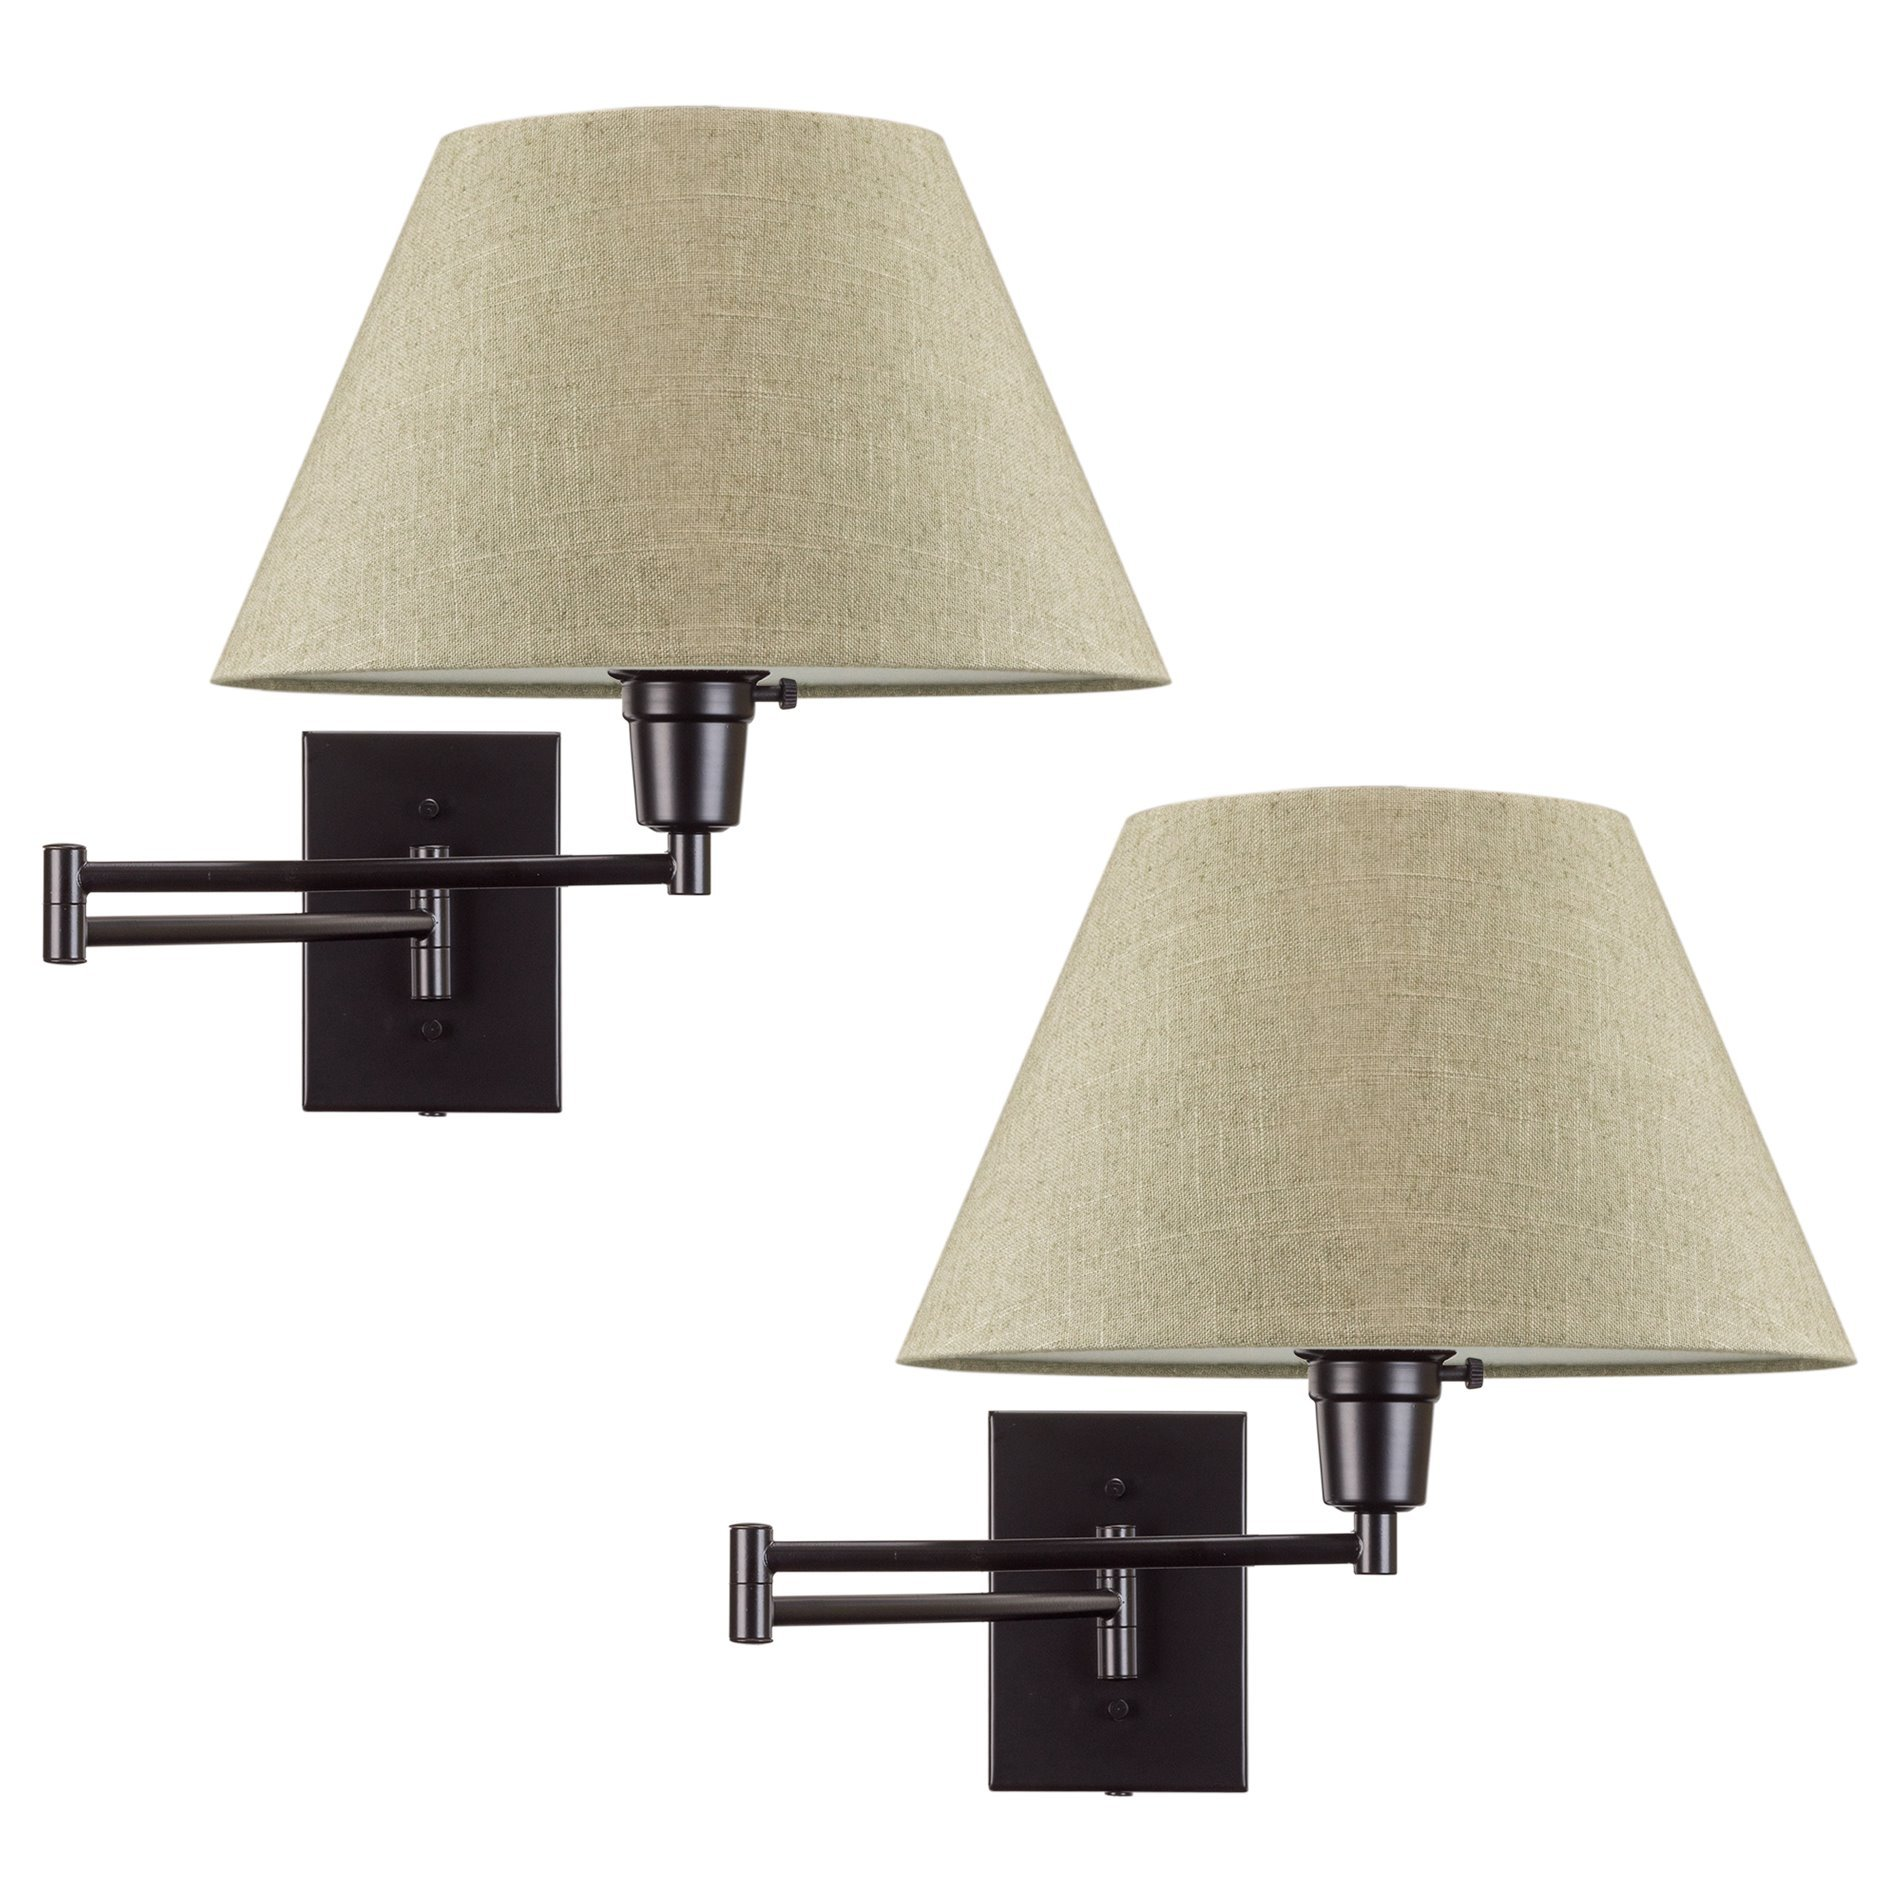 Revel Cambridge 13'' Swing Arm Wall Lamp - Plug In/Wall Mount + Latte Mocha Fabric Shade, 150W 3-Way, Black Finish, 2-Pack by Revel